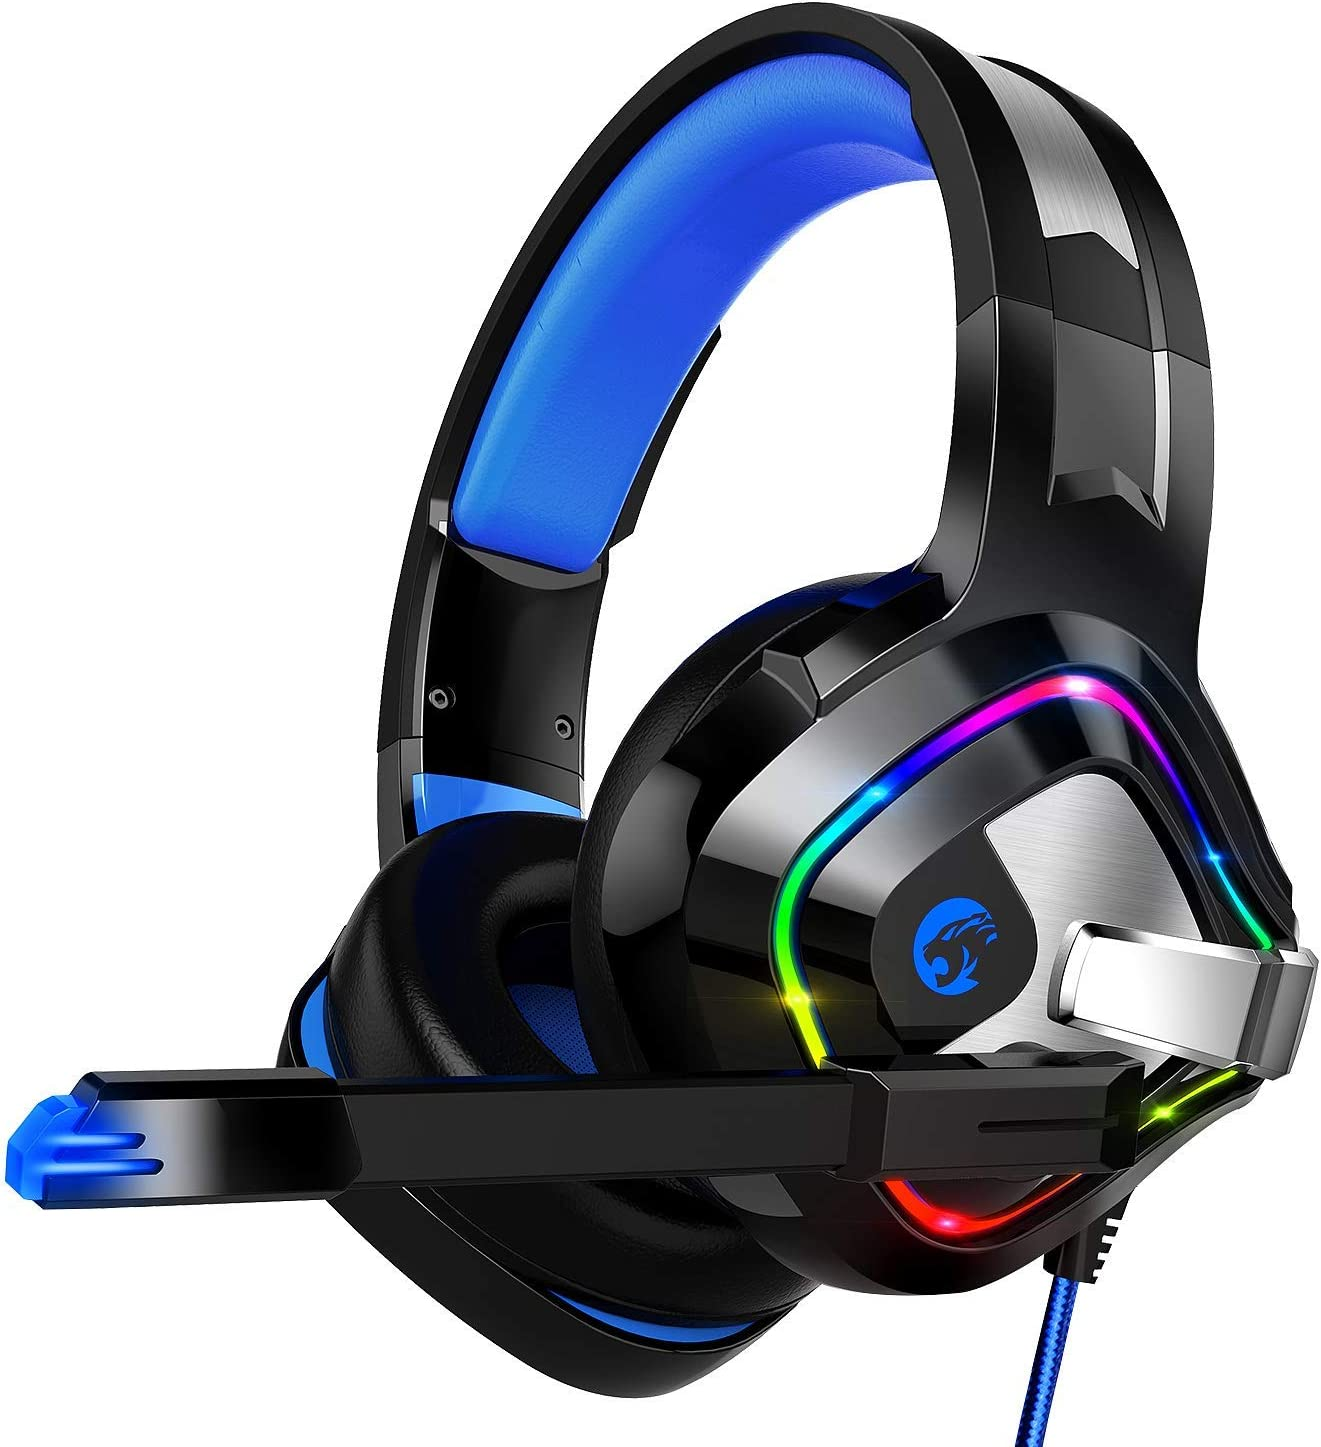 ZIUMIER Gaming Headset PS4 Headset, Xbox One Headset with Noise Canceling Mic RGB Light, PC Headset with Stereo Surround Sound, Over Ear Headphones for PC, PS4, Xbox One, Laptop Renewed